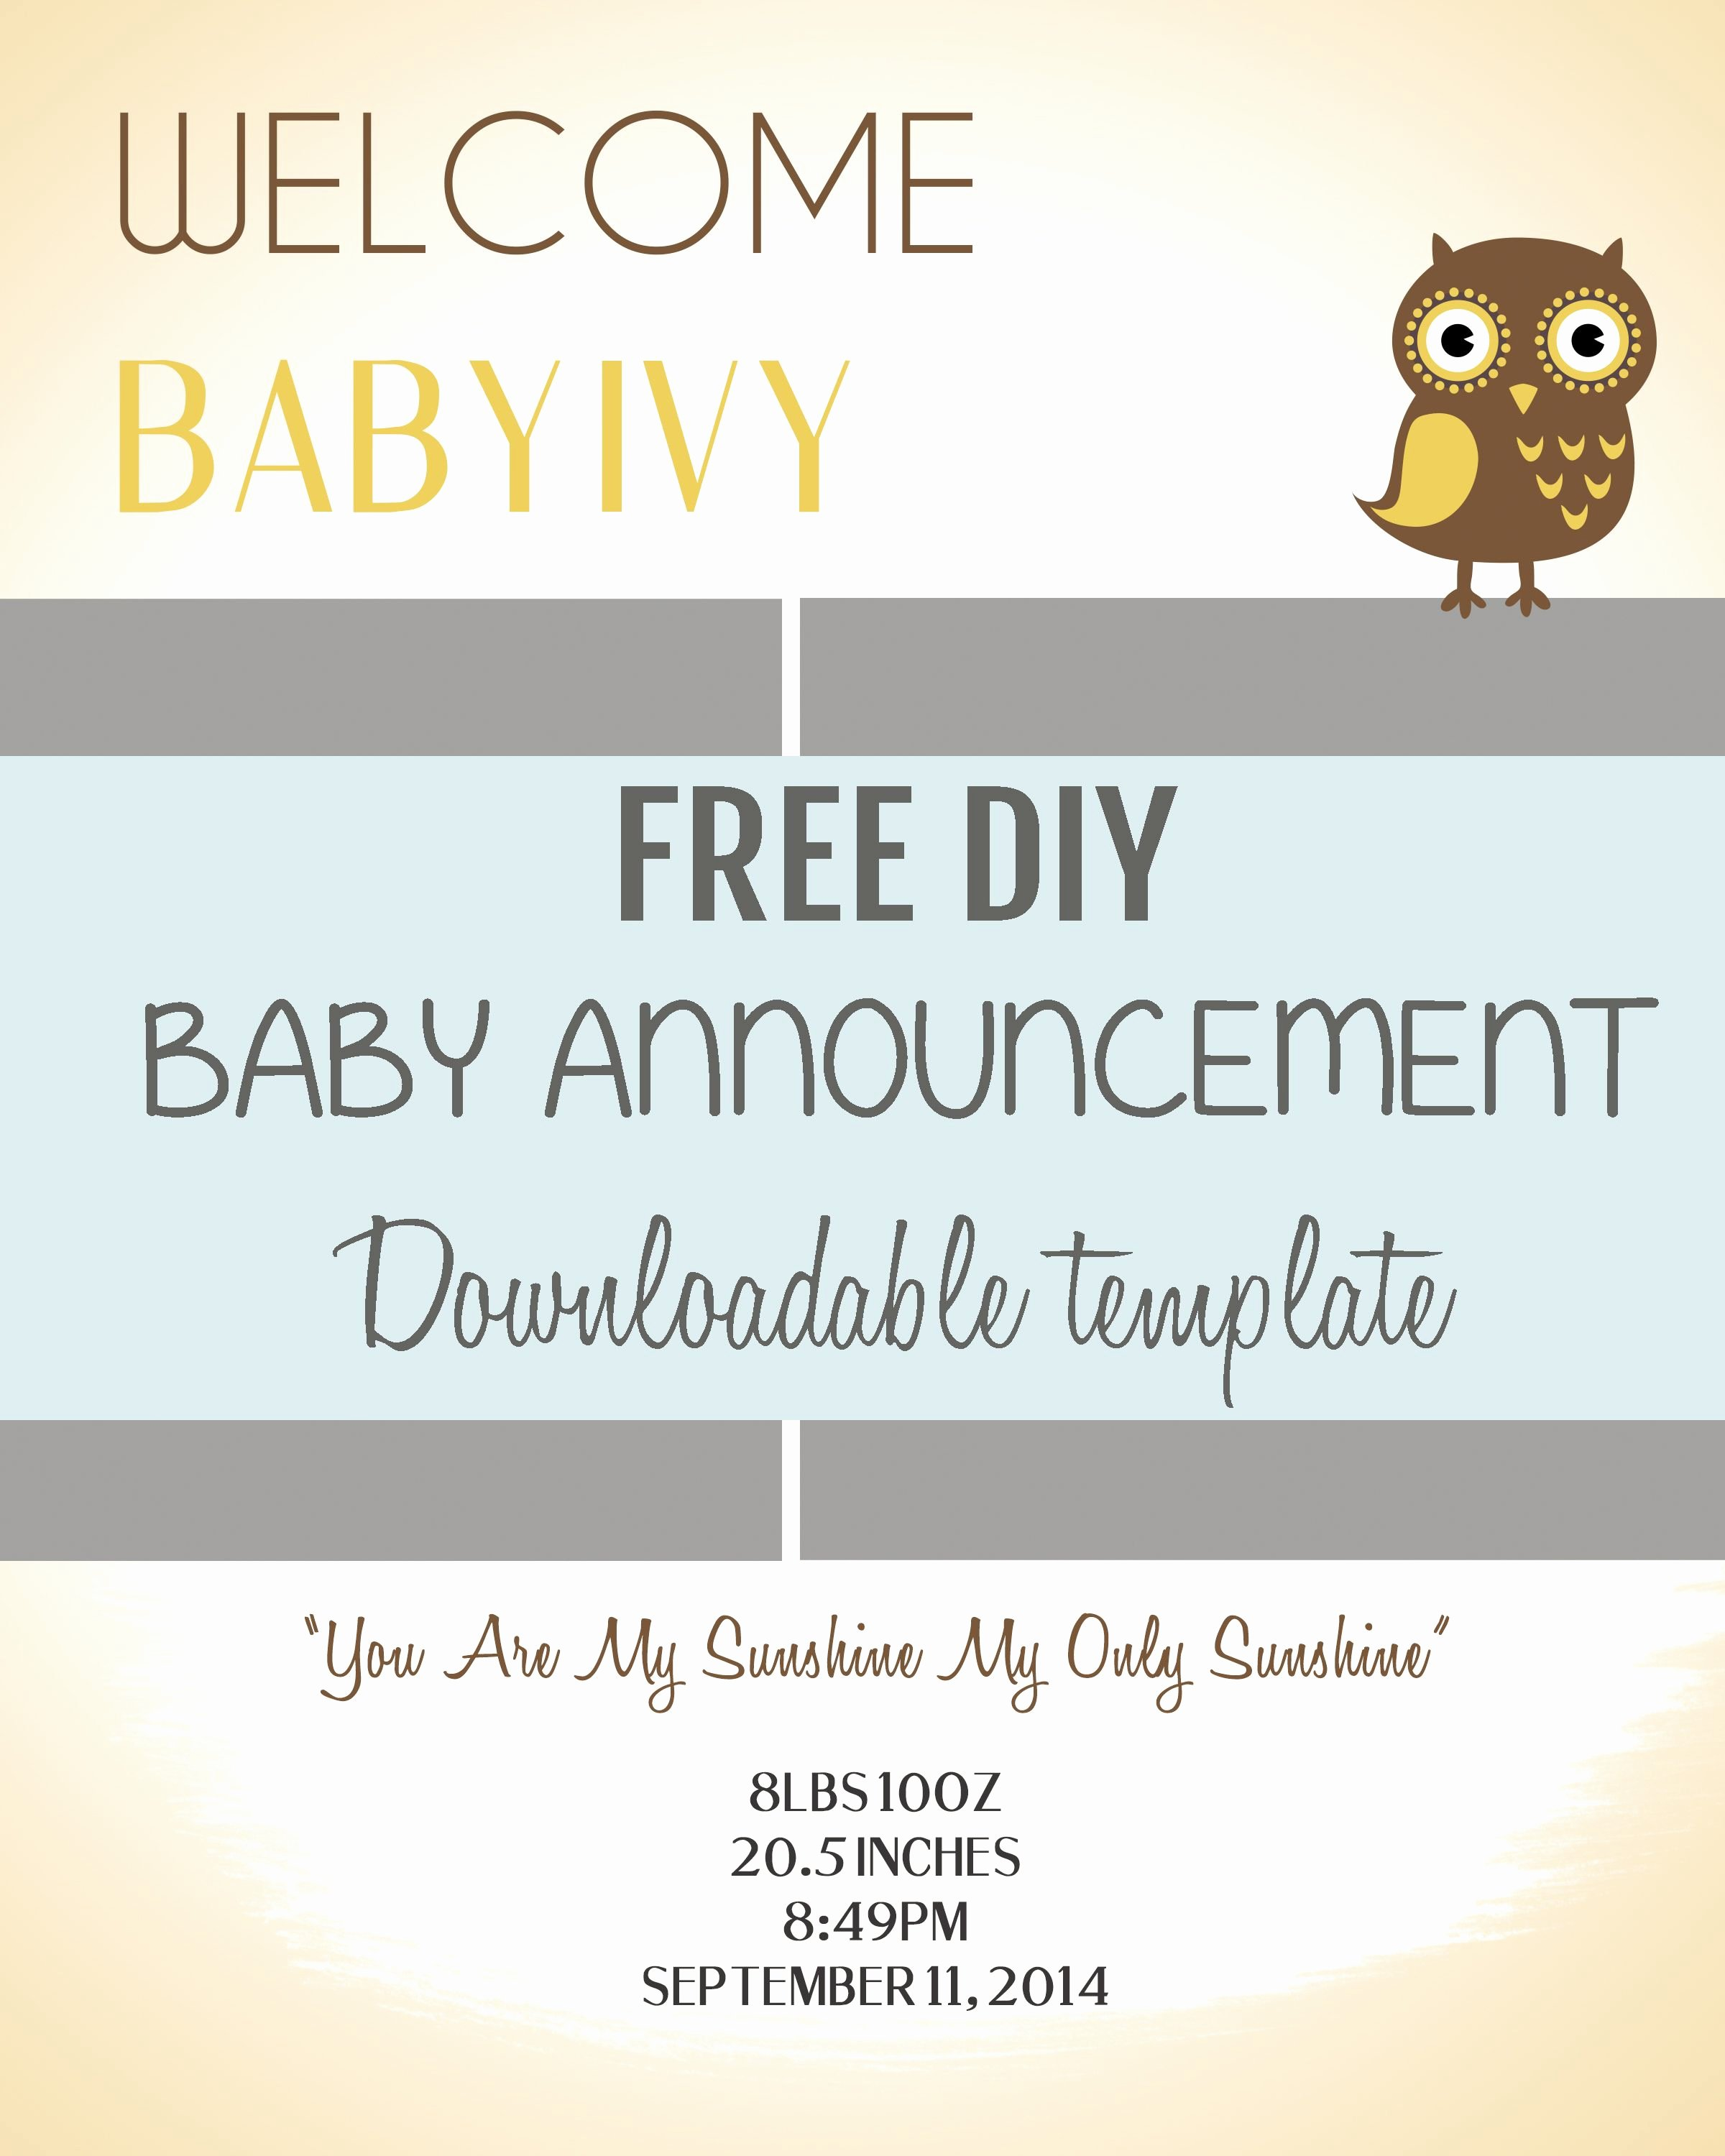 Baby Announcement Email New Diy Baby Announcement Template Pee Wee